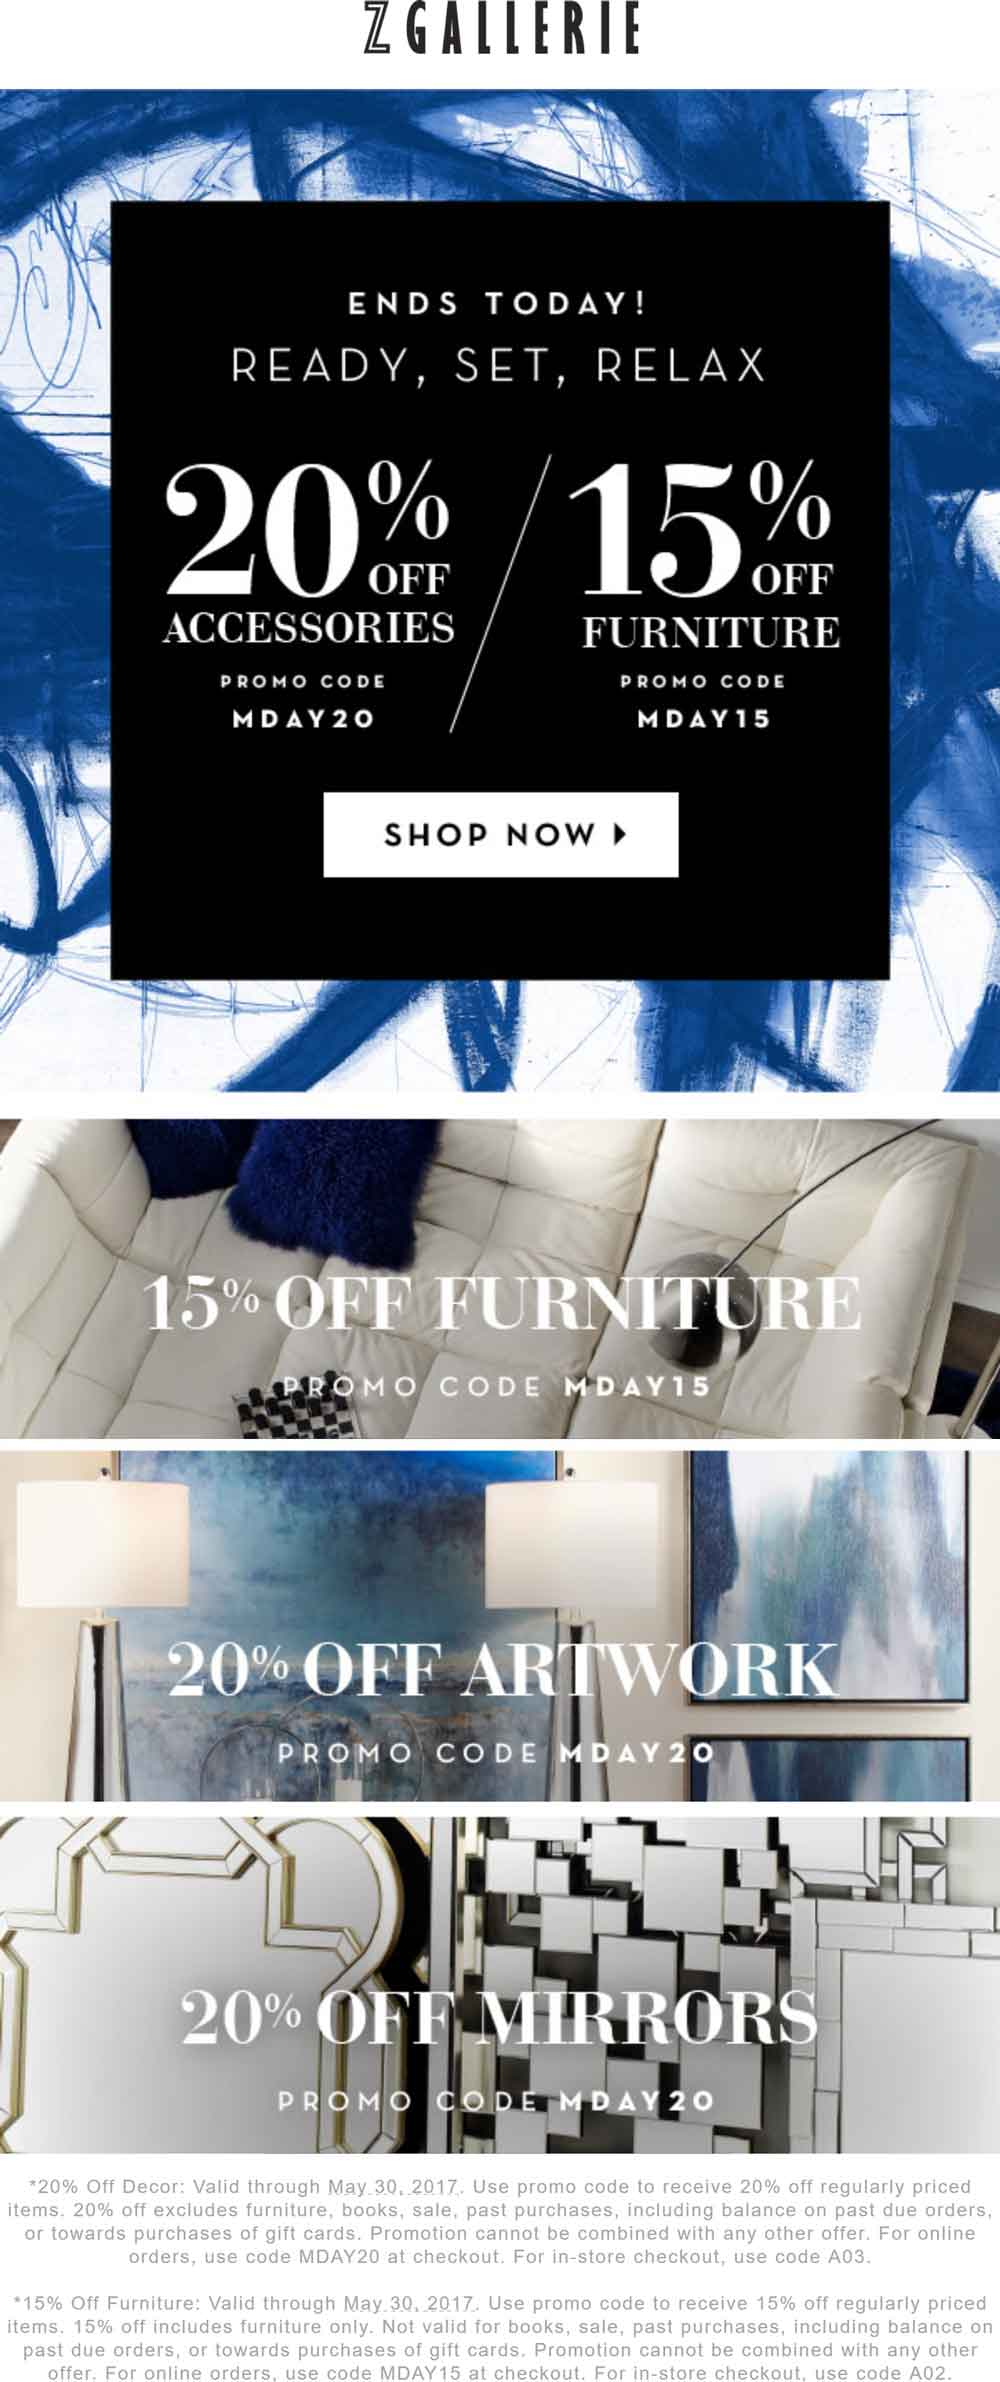 ZGallerie.com Promo Coupon 15-20% off today at Z Gallerie, or online via promo code MDAY20